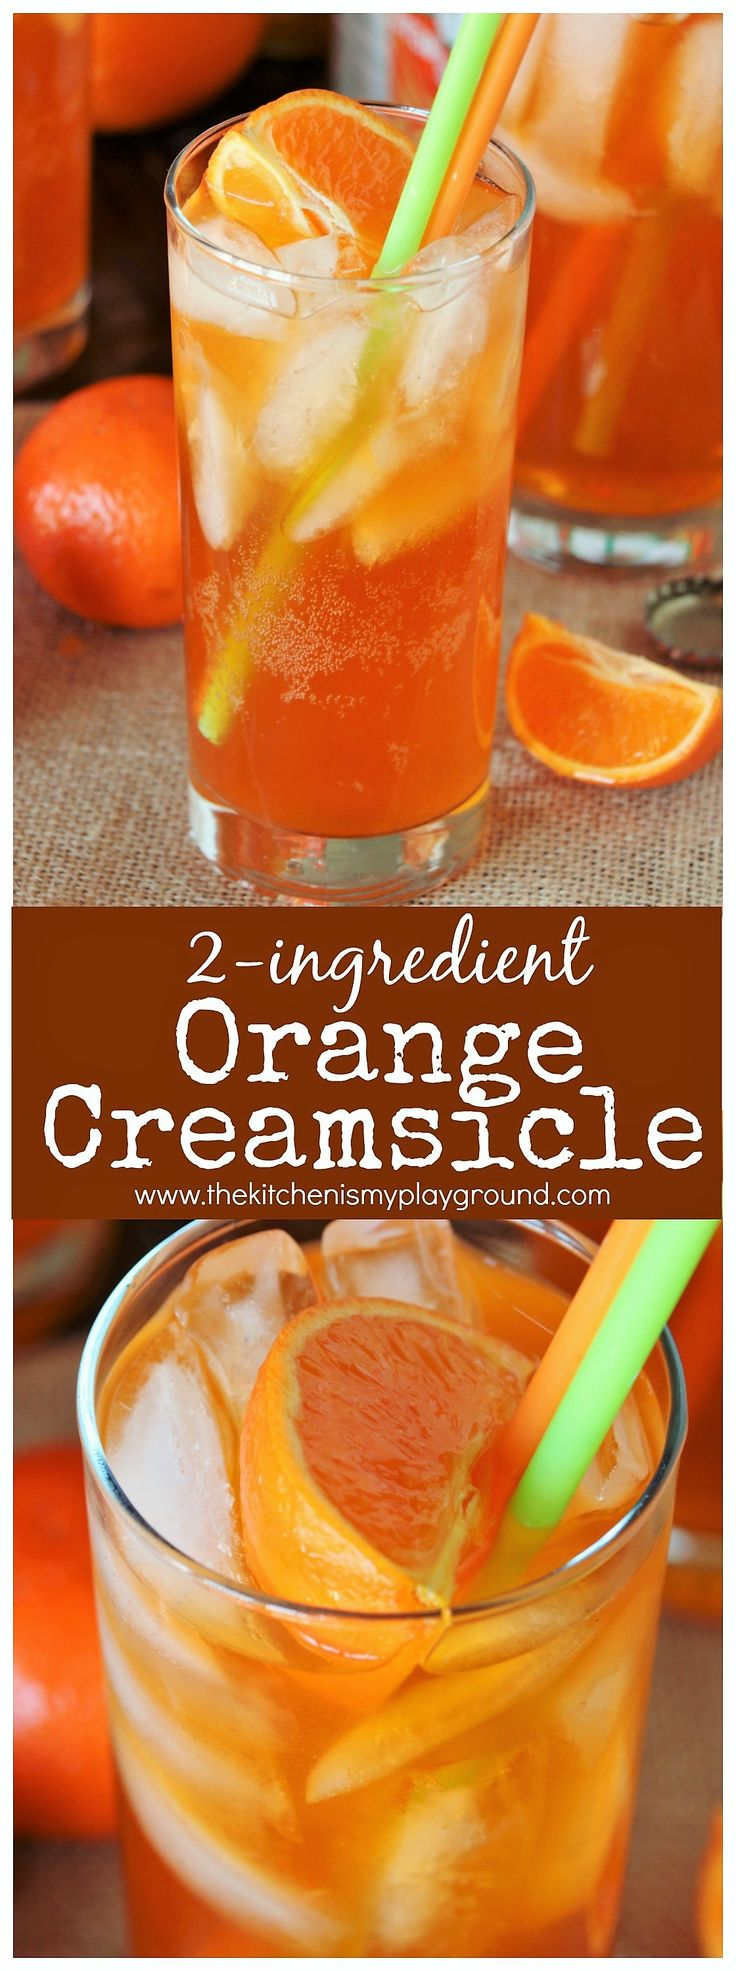 Orange Creamsicle Drink ~ Just 2 simple ingredients combine to create this super tasty drink version of the childhood favorite orange creamsicle popsicle! #orangecreamsicle #orangedrink #creamsicle #mocktails #mocktail #summerdrinks #thekitchenismyplayground  www.thekitchenismyplayground.com